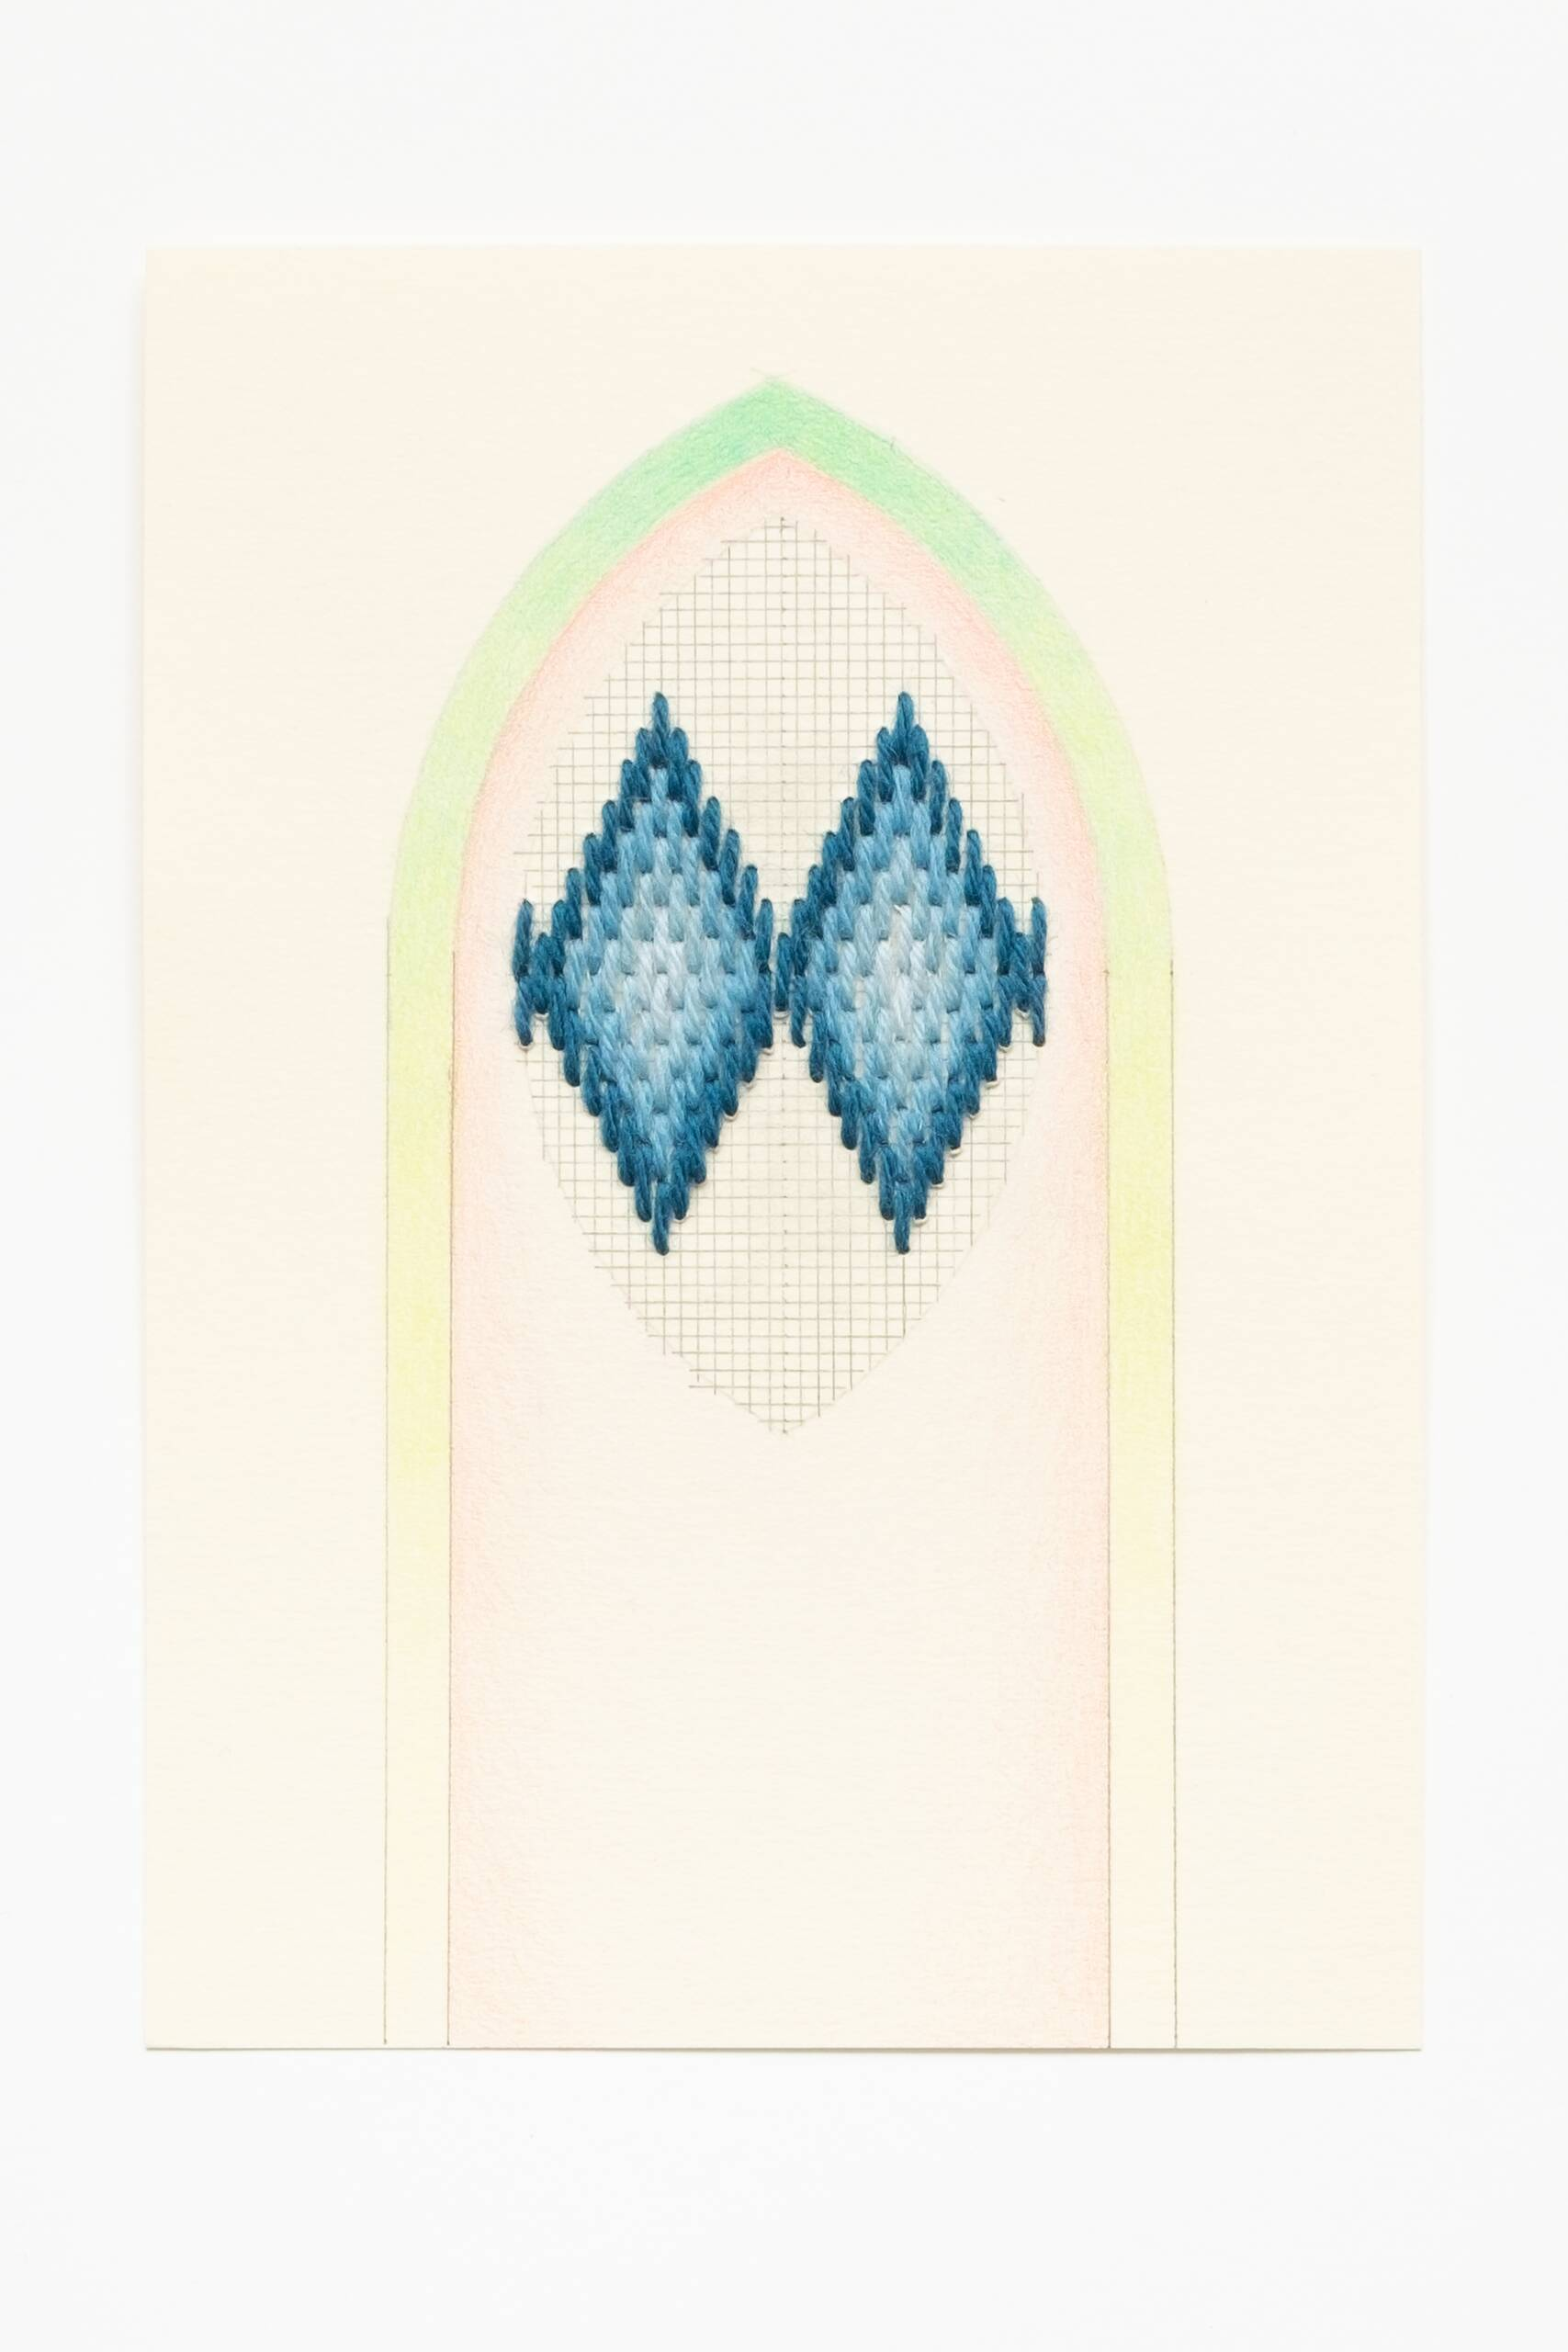 Bargello vesica piscis [blue on peach], Hand-embroidered wool, pencil and colored pencil on paper, 2020